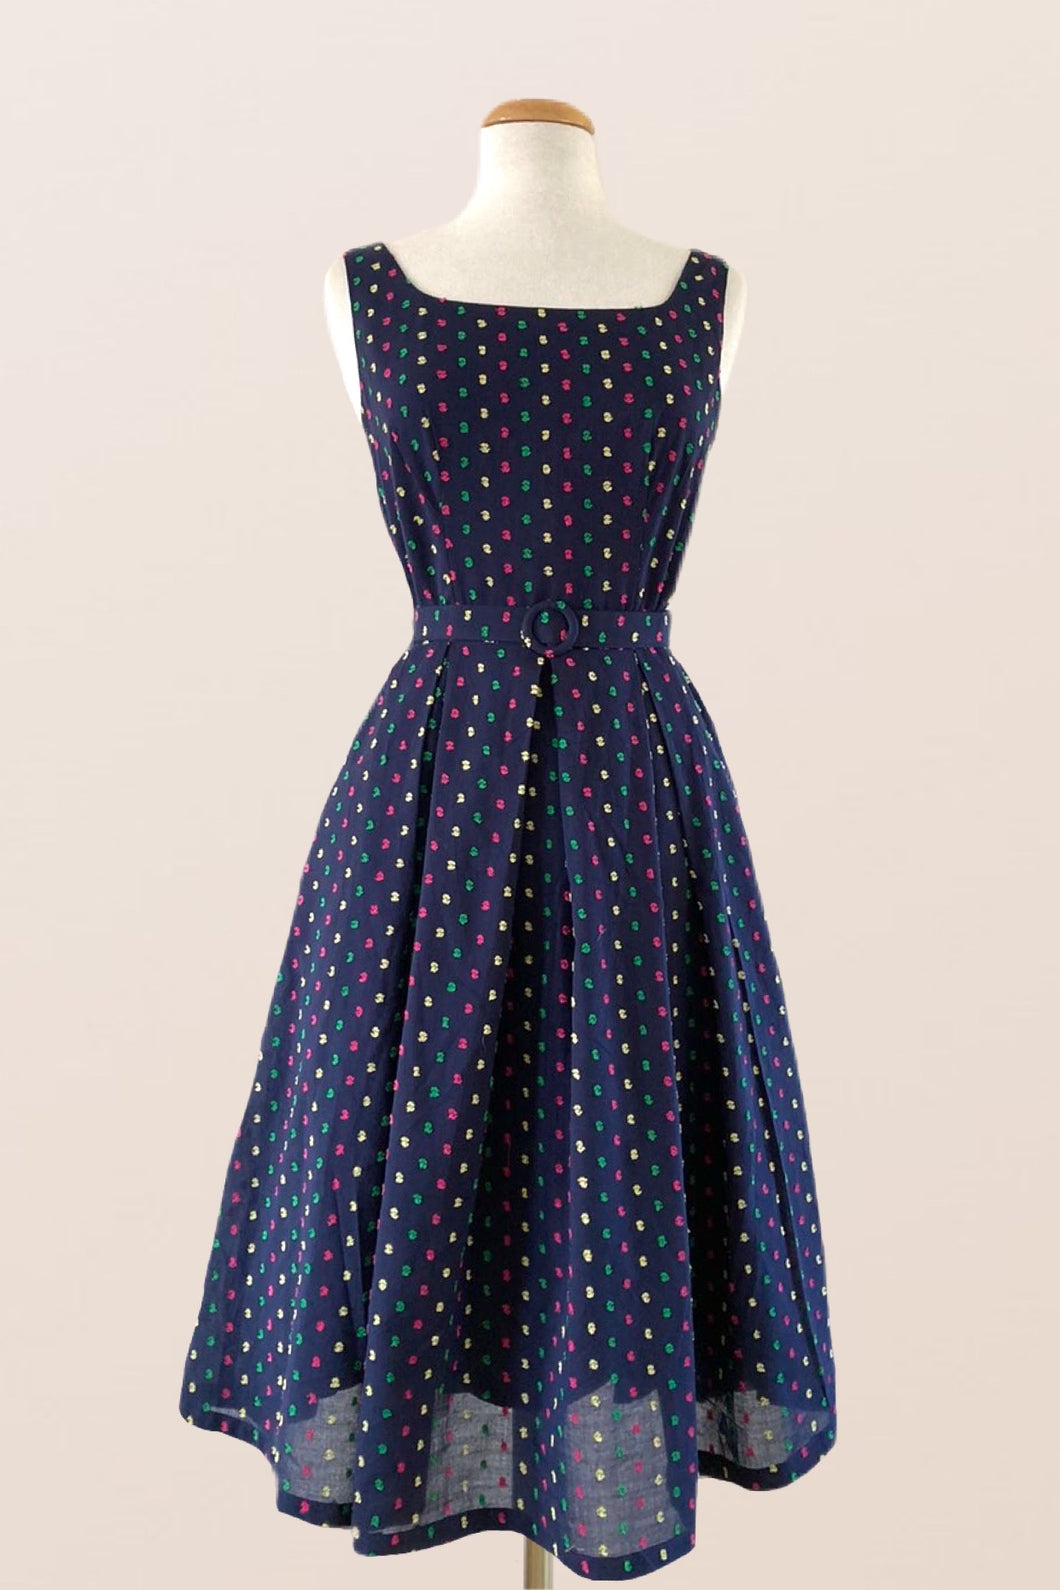 Abella Polka Dot Dress